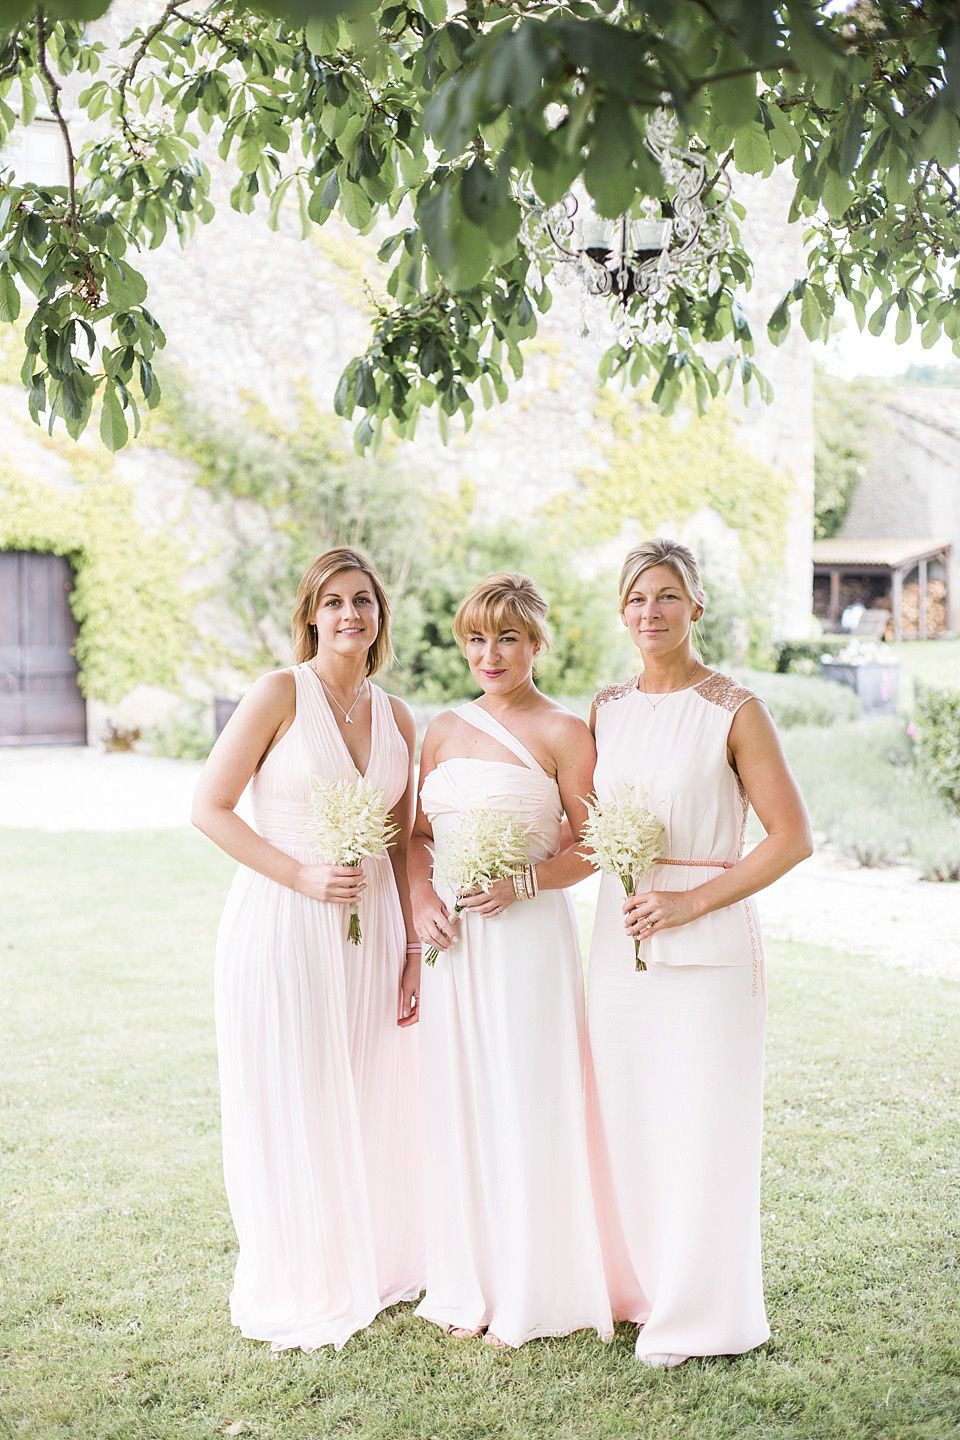 A maria hohan dress and blush pink maids for a relaxed and elegant a maria hohan dress and blush pink maids for a relaxed and elegant outdoor wedding in france ombrellifo Gallery